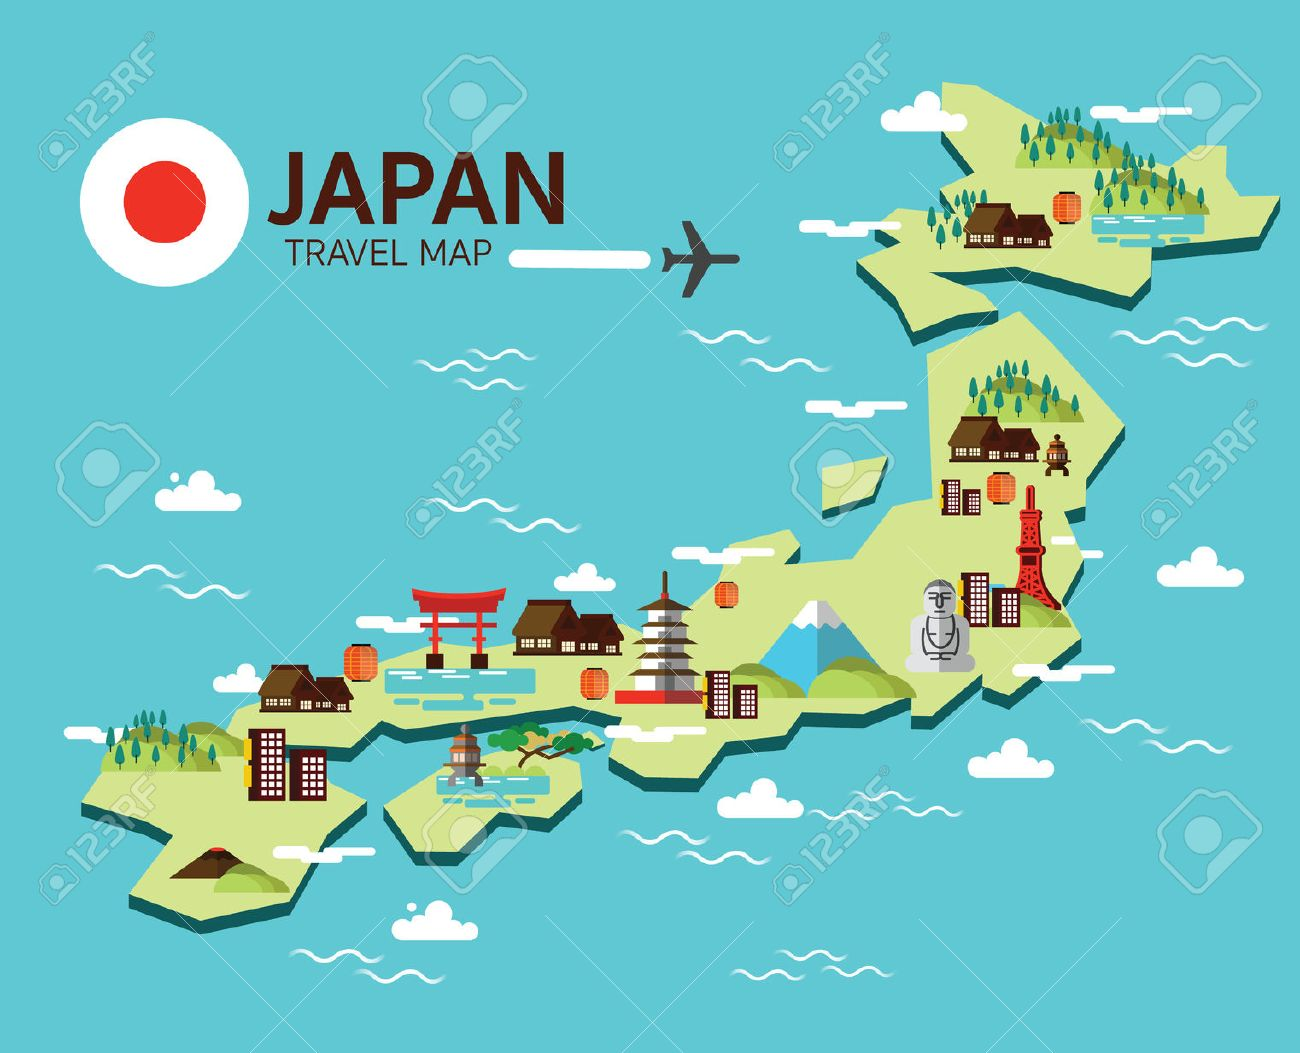 Japan Landmark And Travel Map Flat Design Elements And Icons – Tourist Map Of Japan